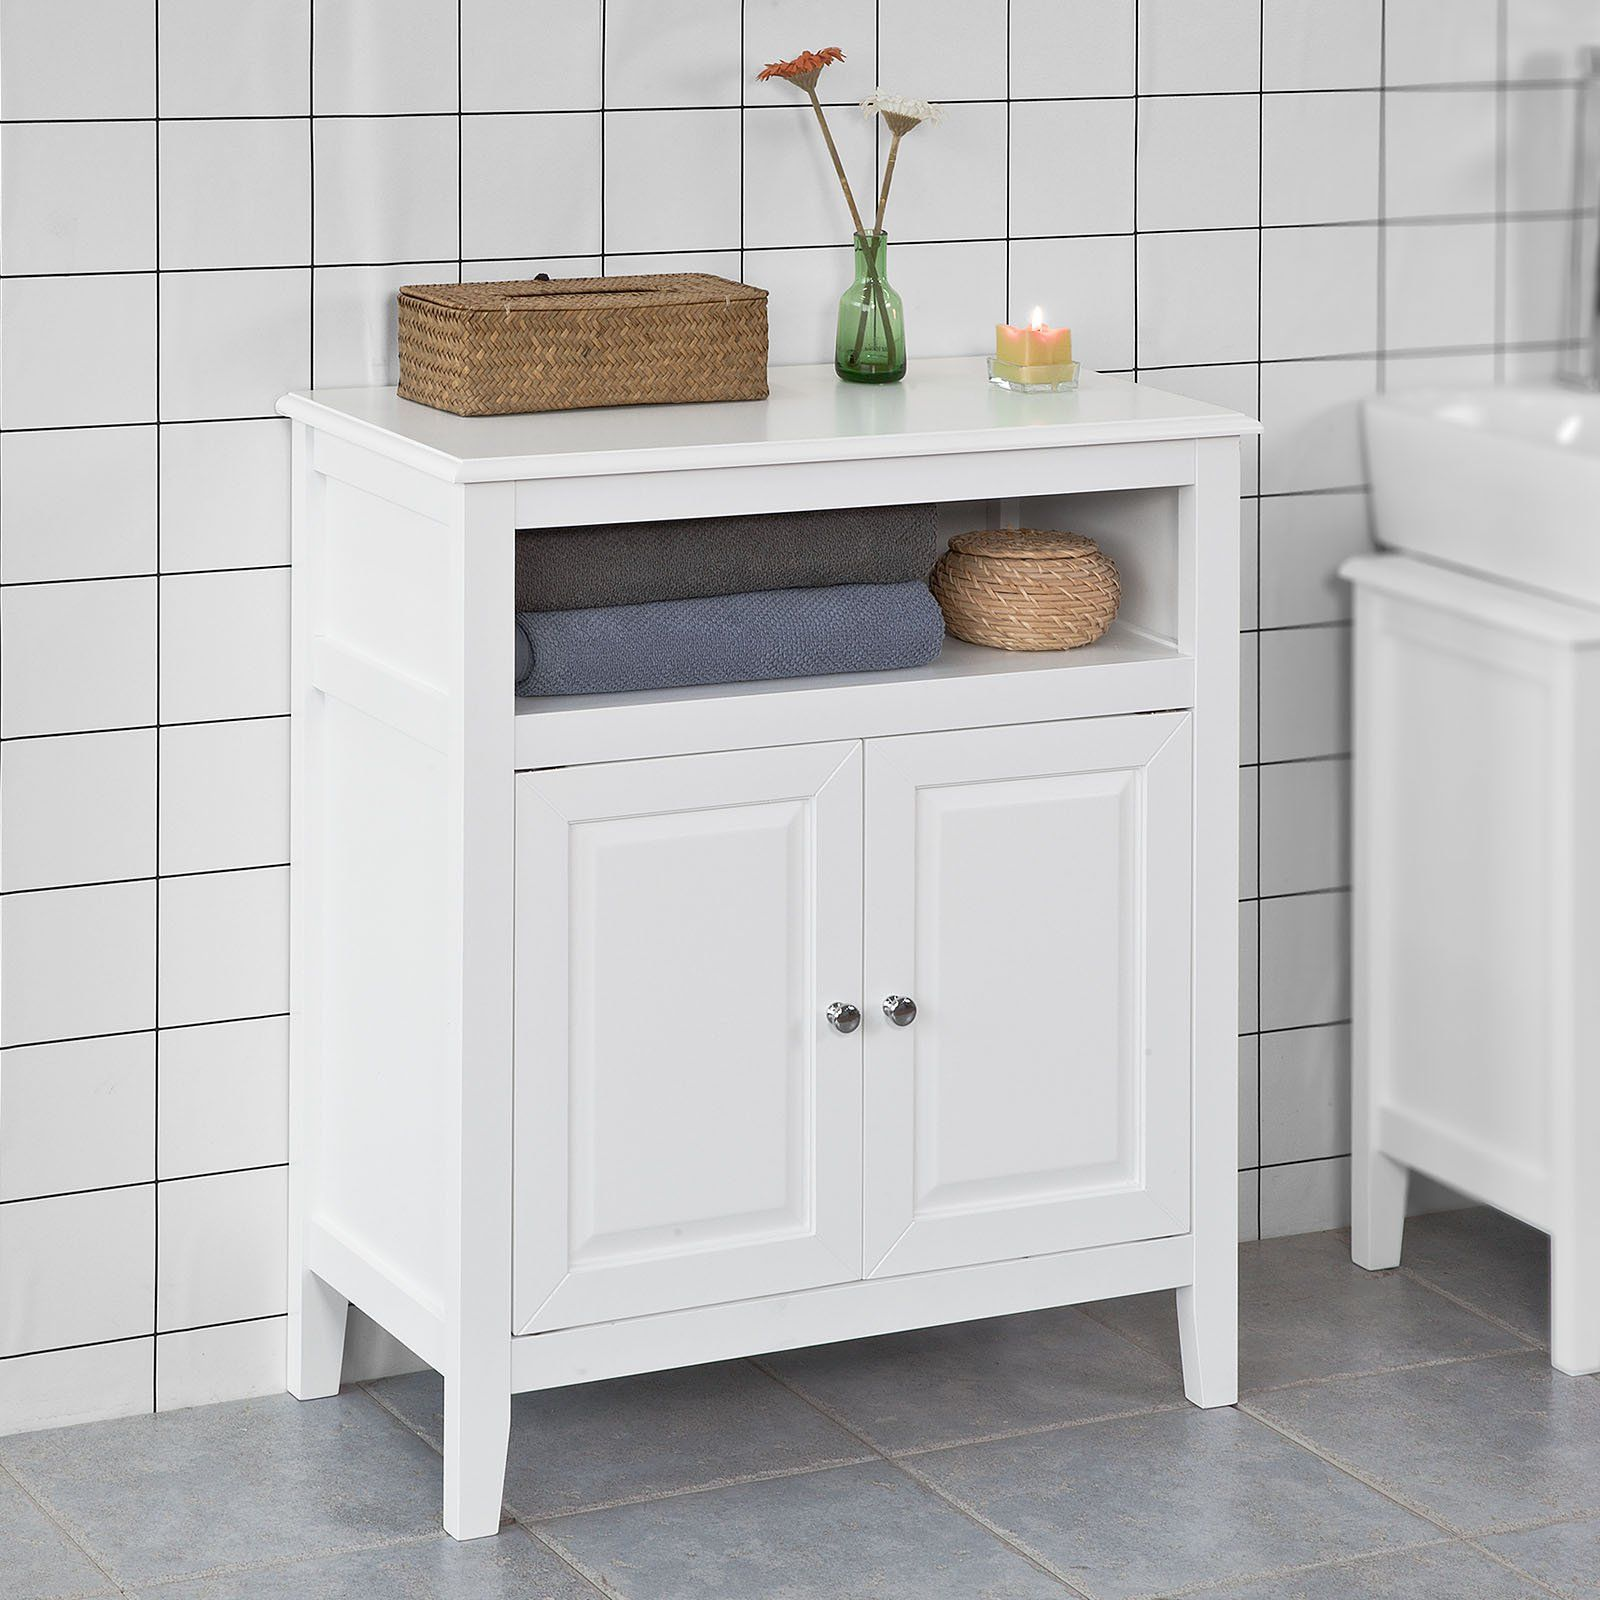 Haotian White Floor Standing Tall Bathroom Storage